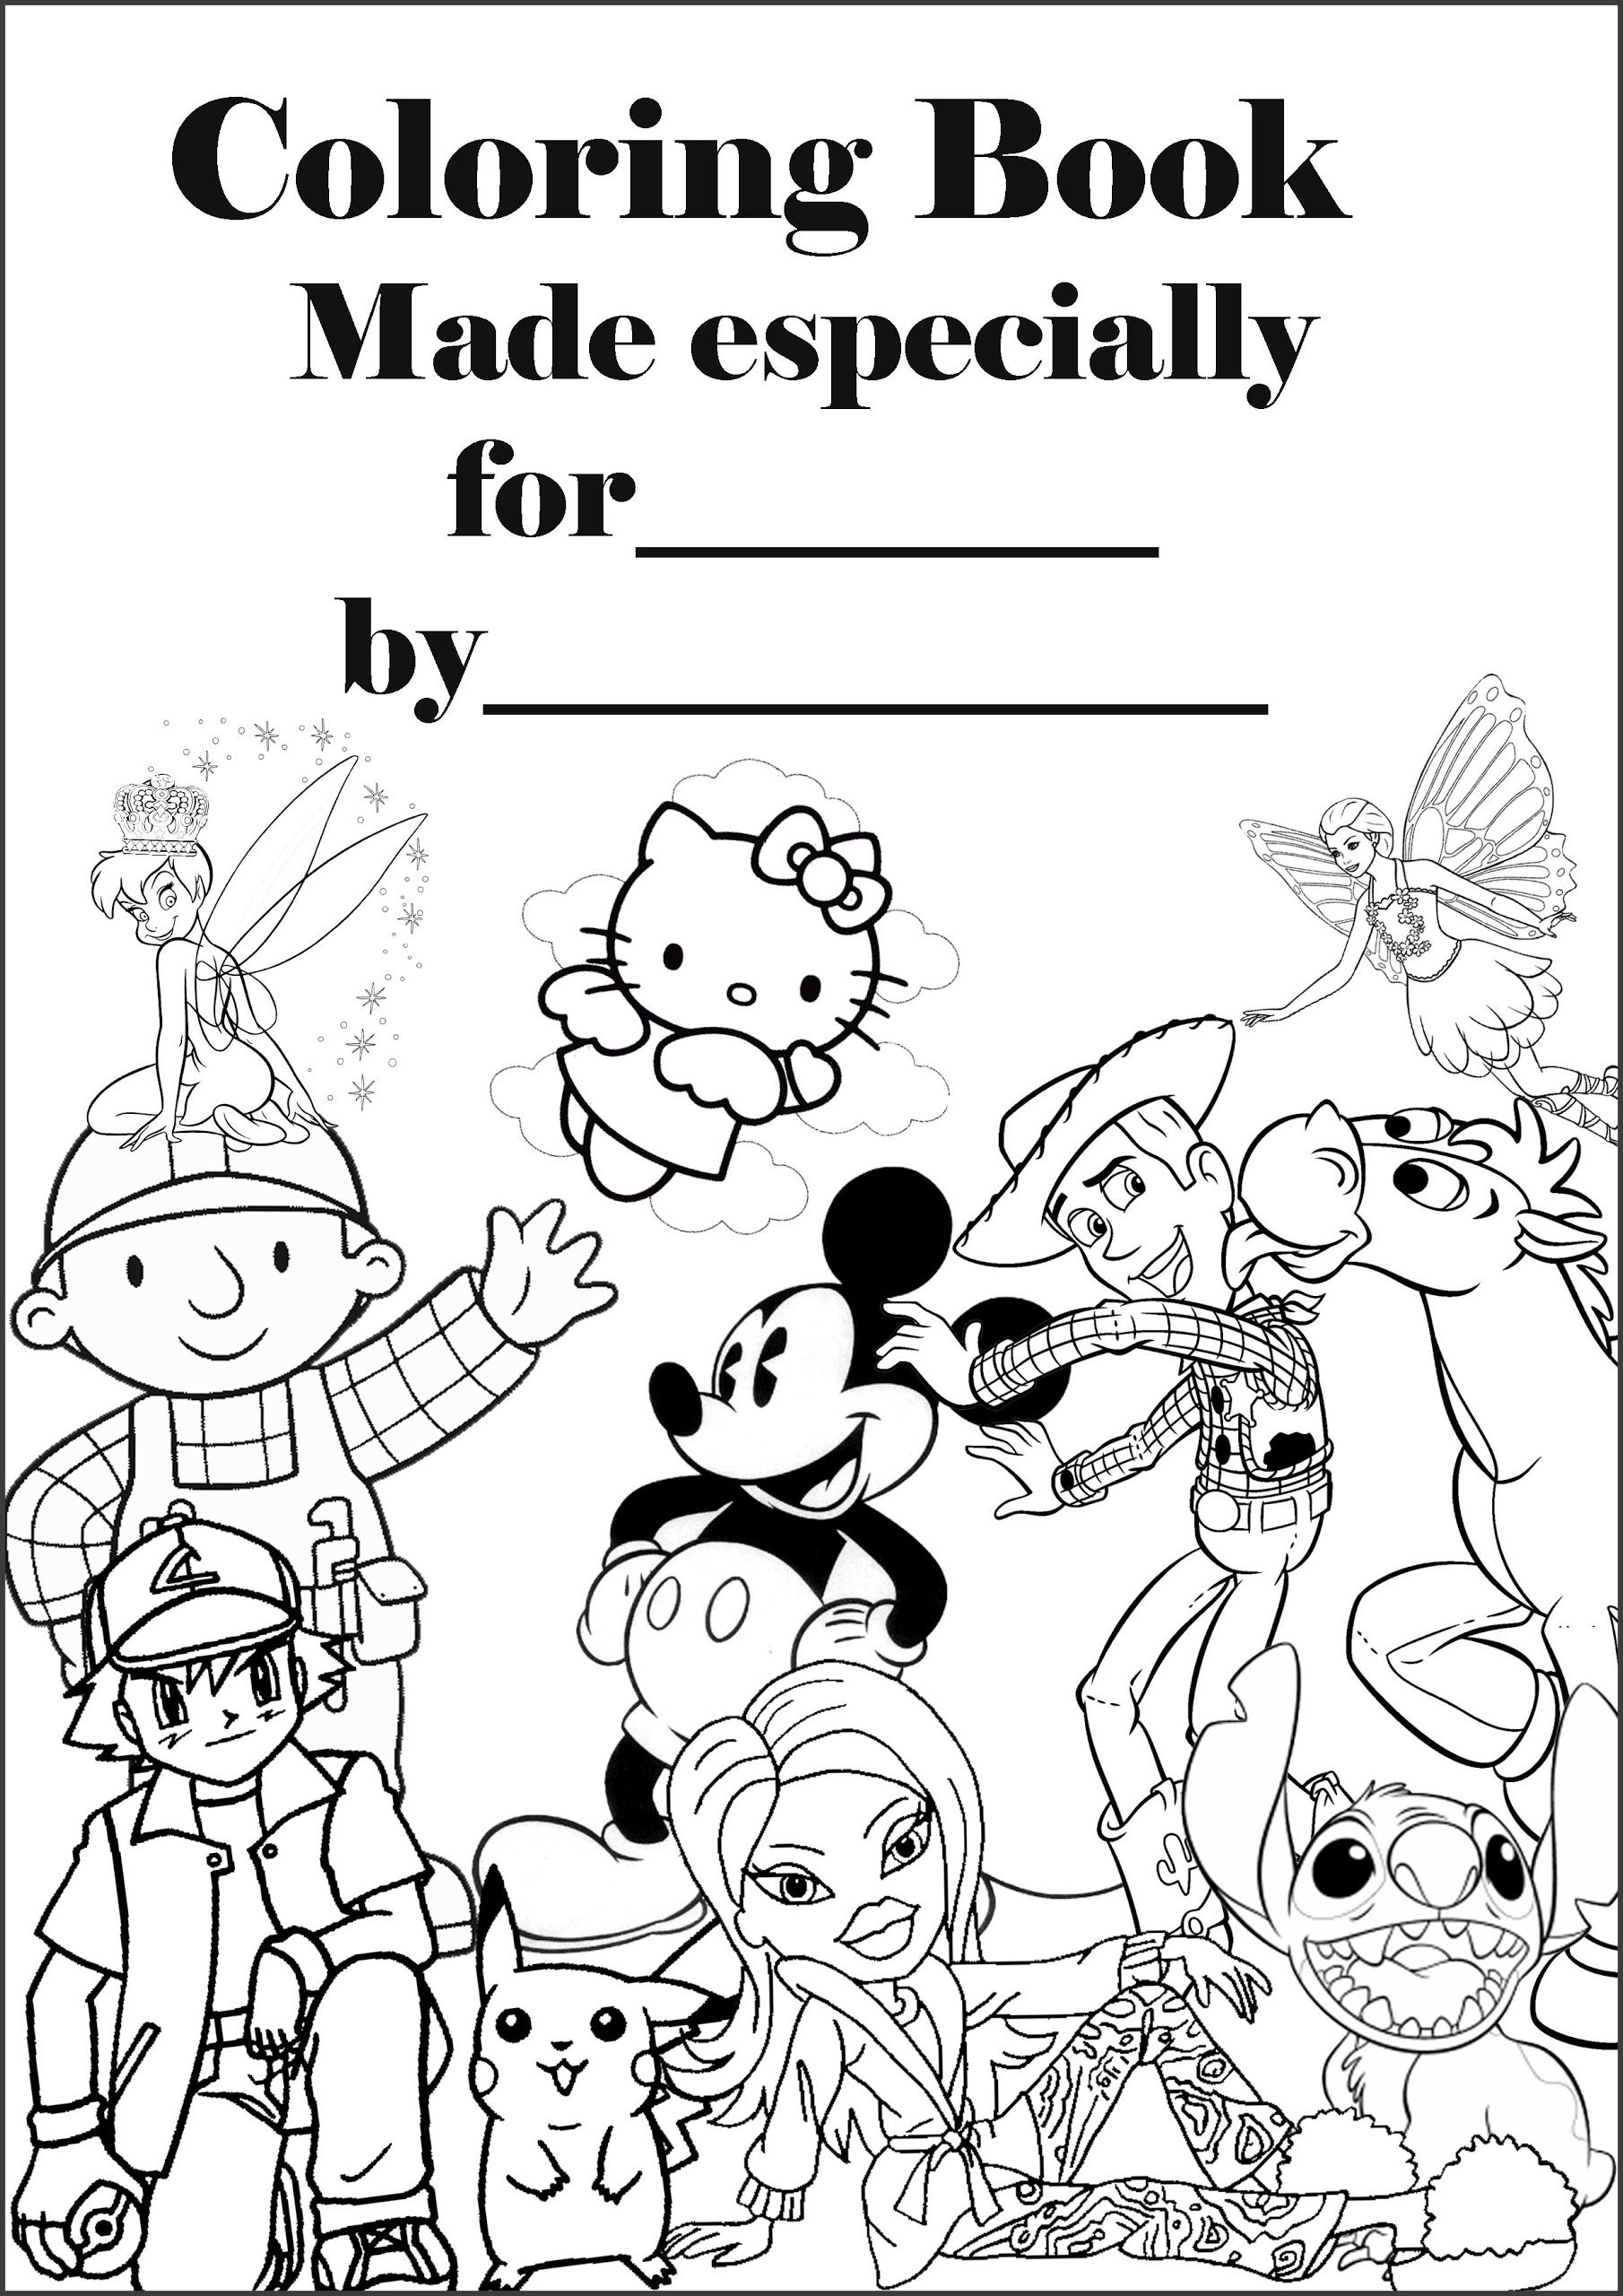 barbie halloween coloring pages free large images - Barbie Halloween Coloring Pages